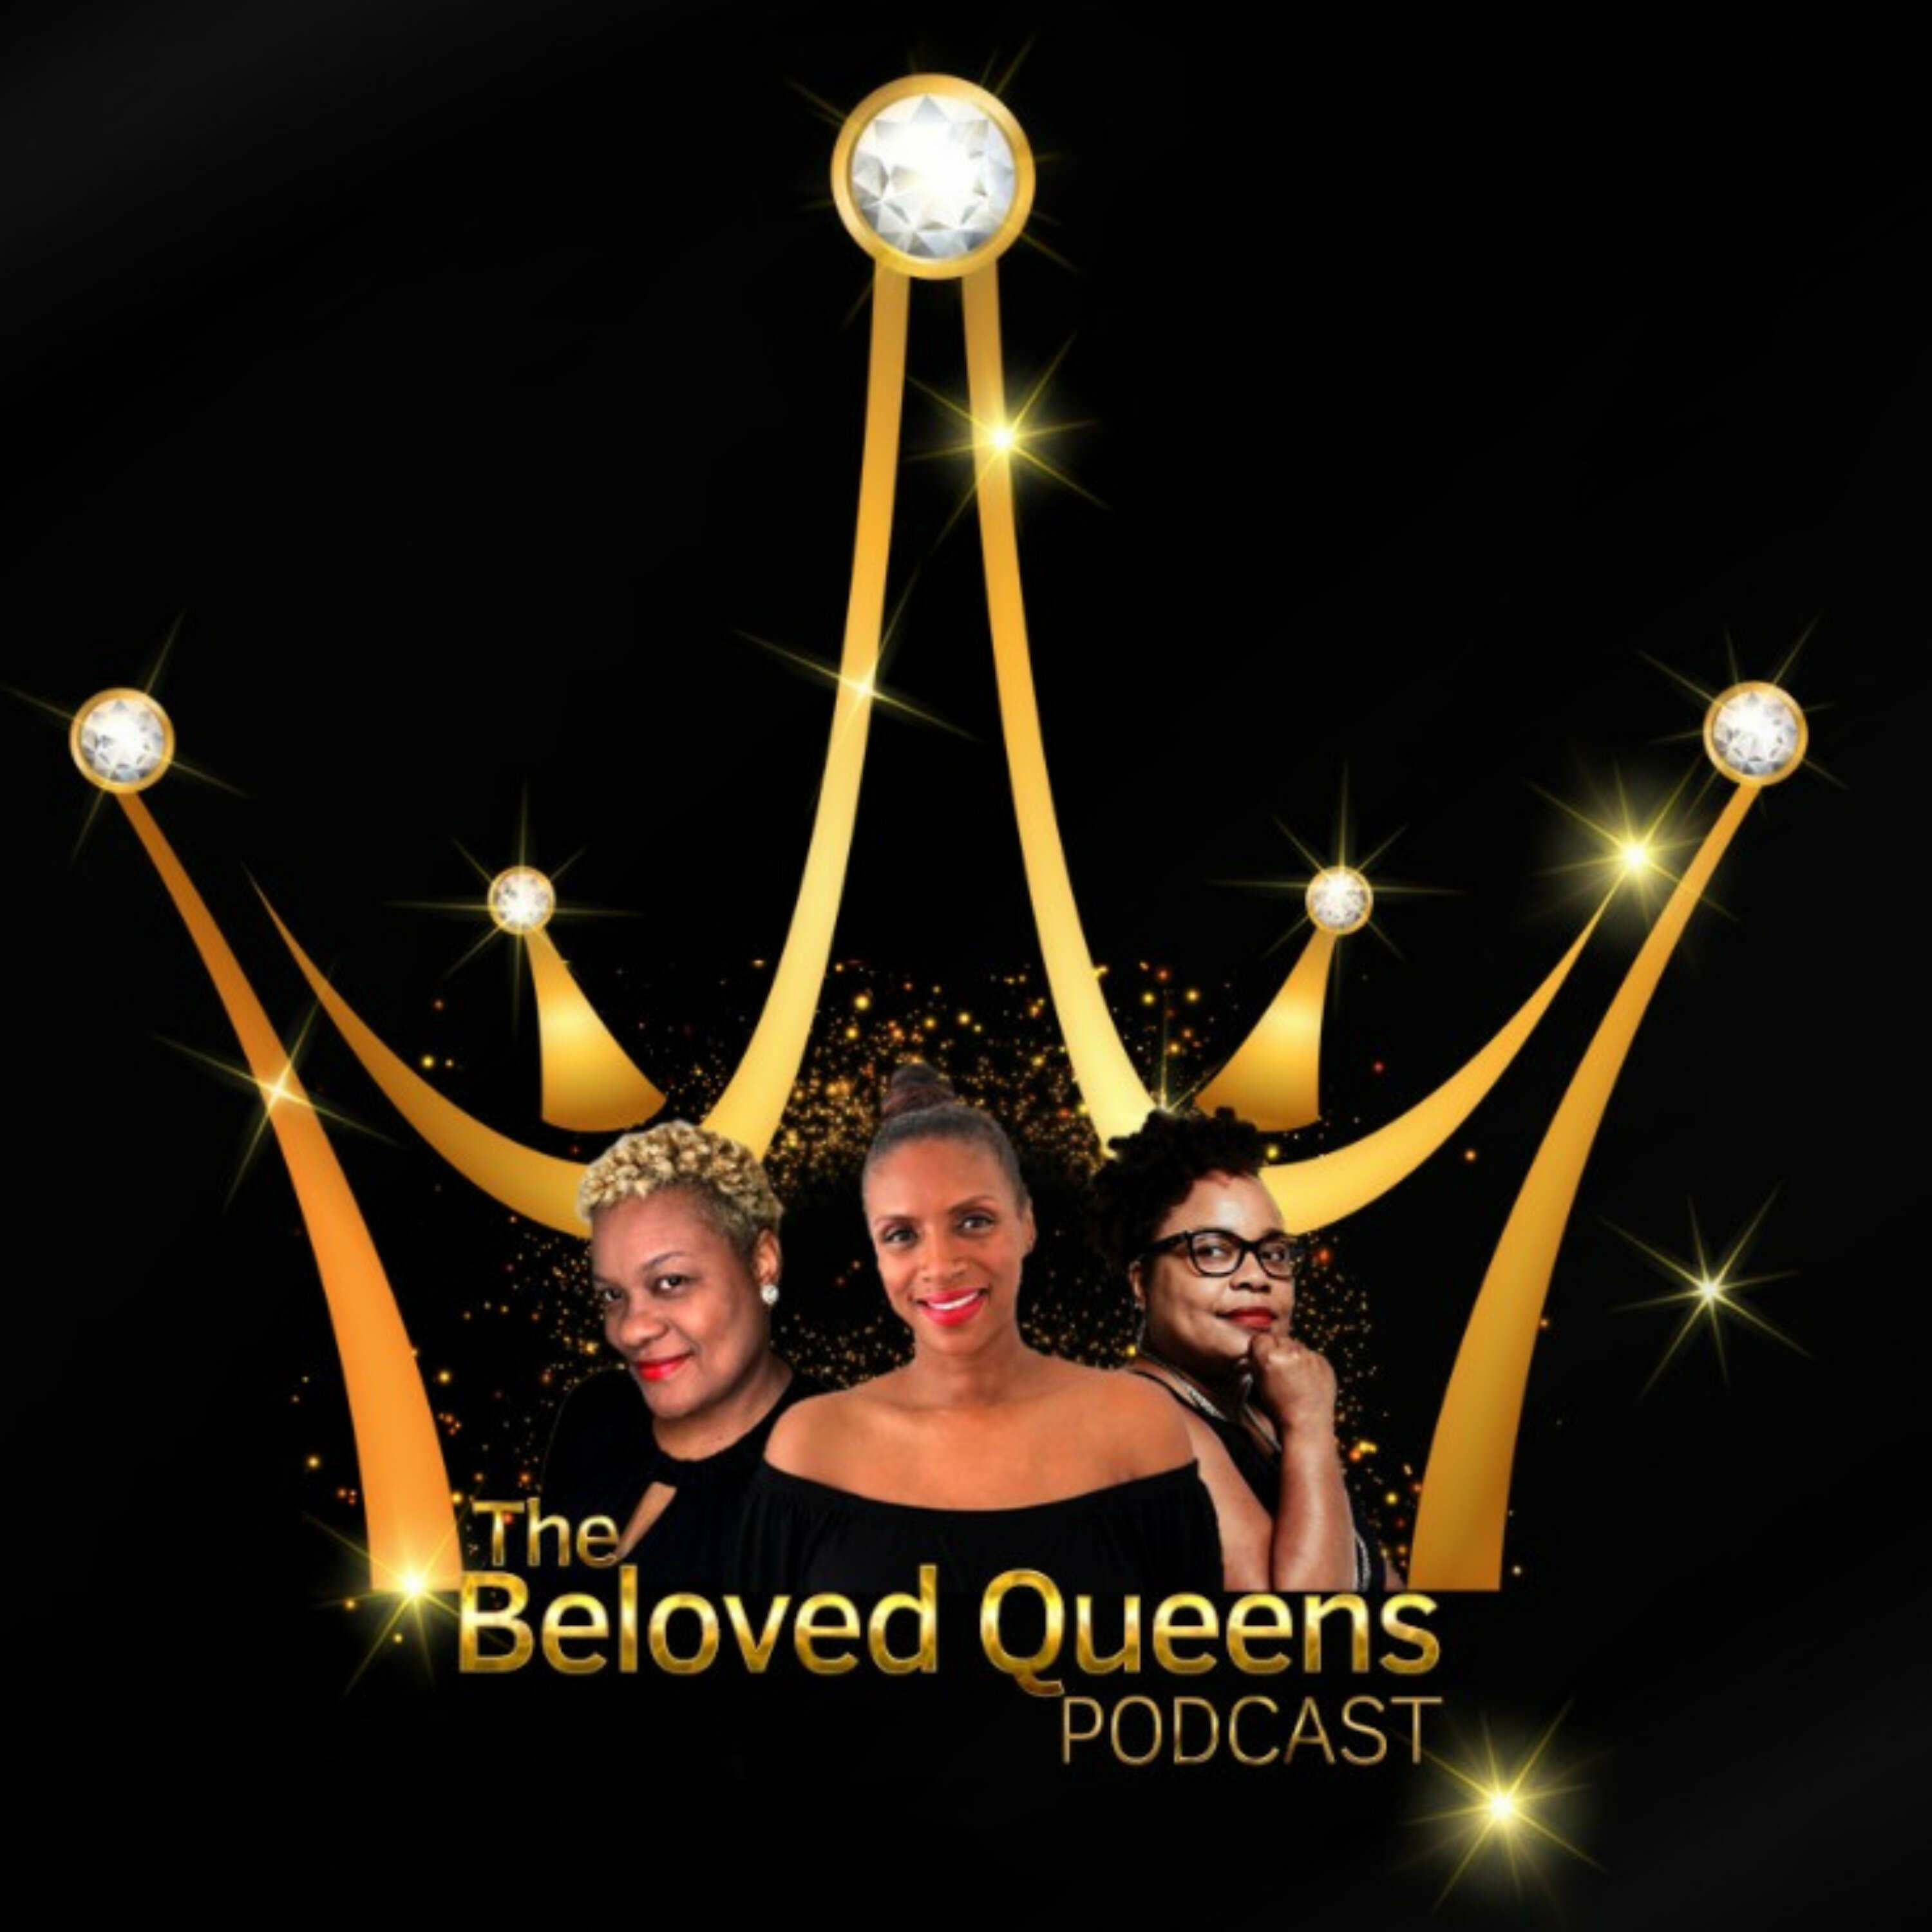 The Beloved Queens Podcast